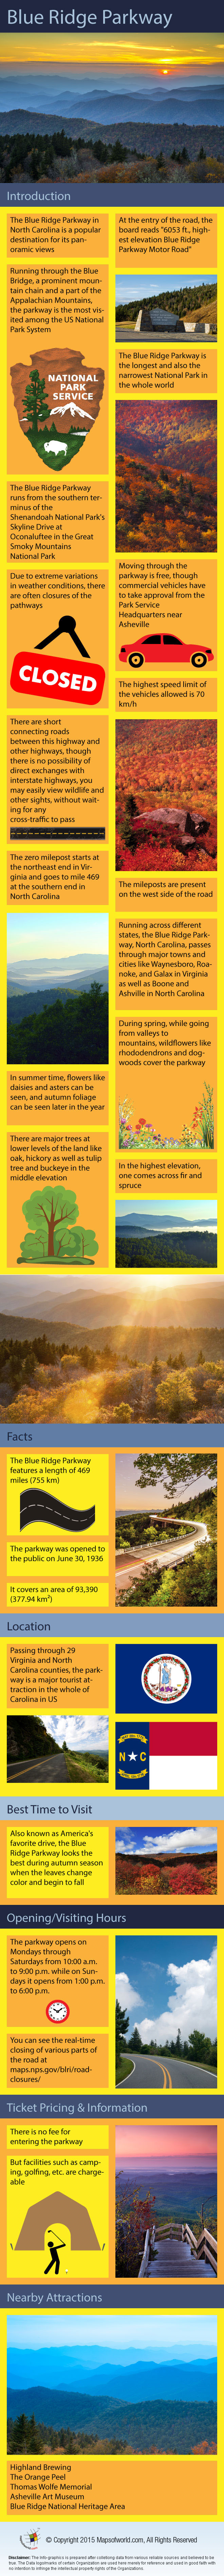 Blue Ridge Parkway Infographic